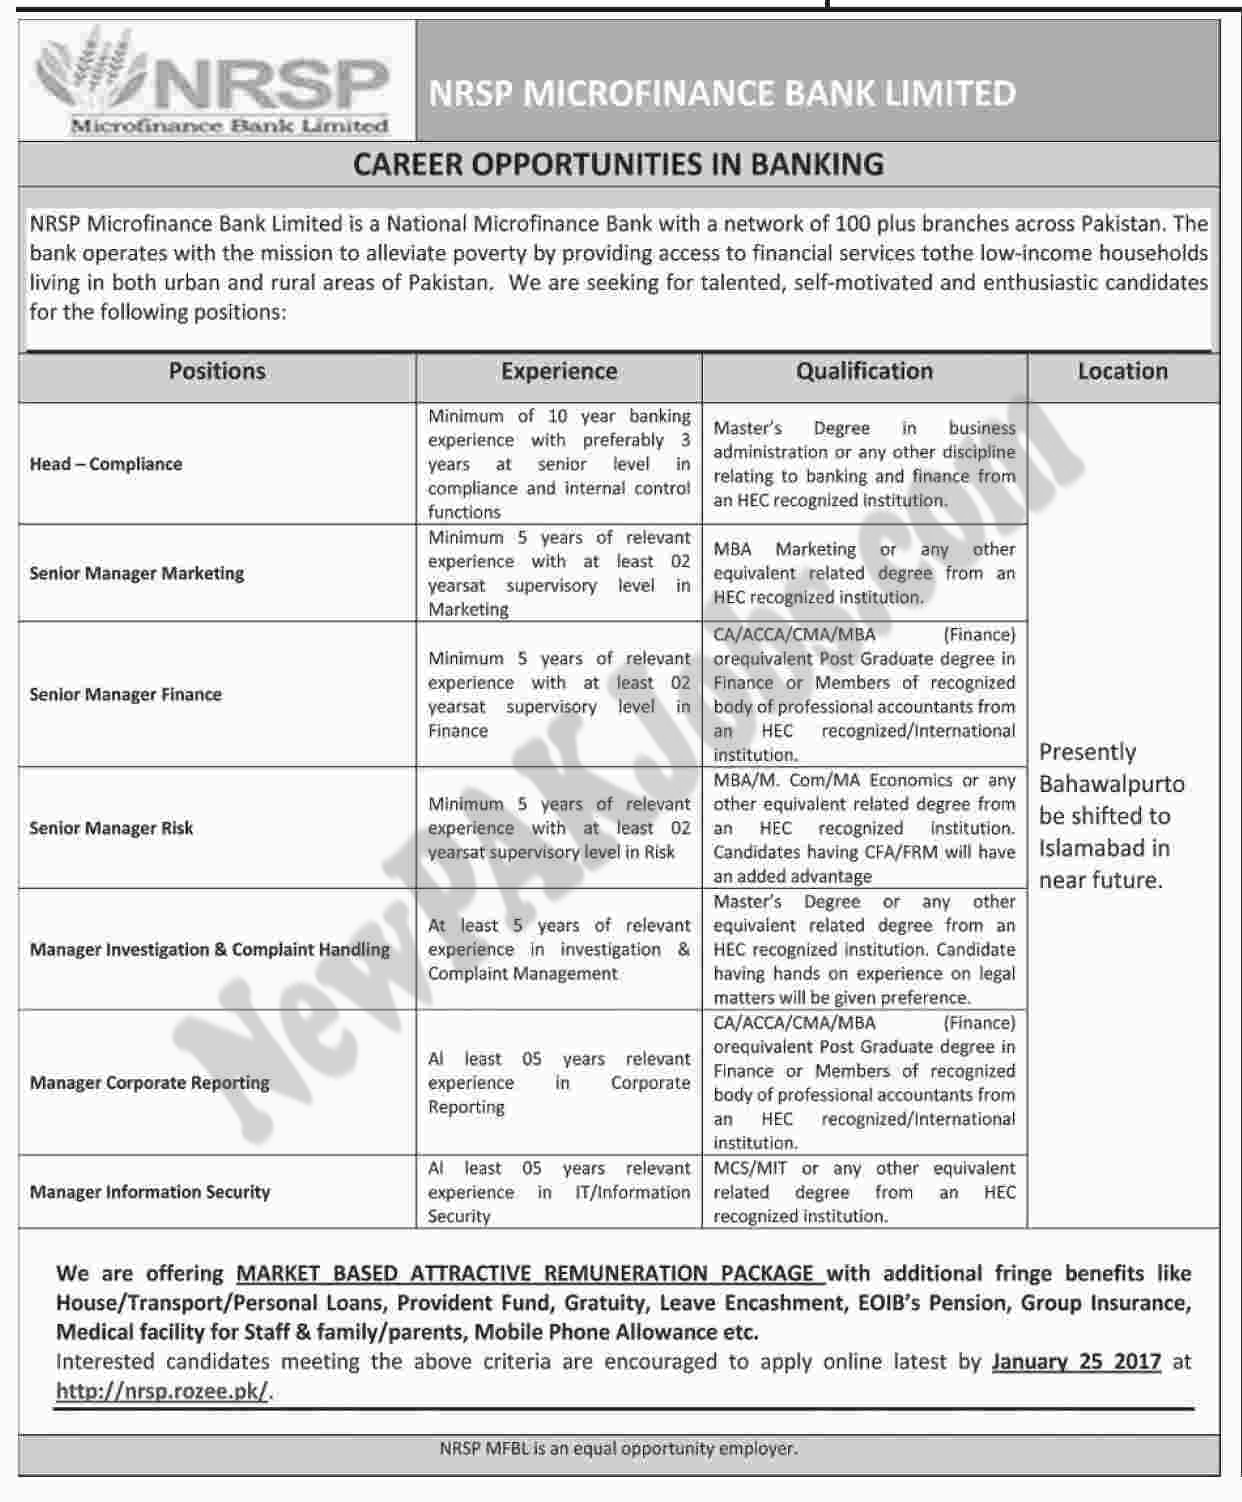 Today Jobs announced in NRSP Microfinance Bank Limited Apply Through Rozee.pk